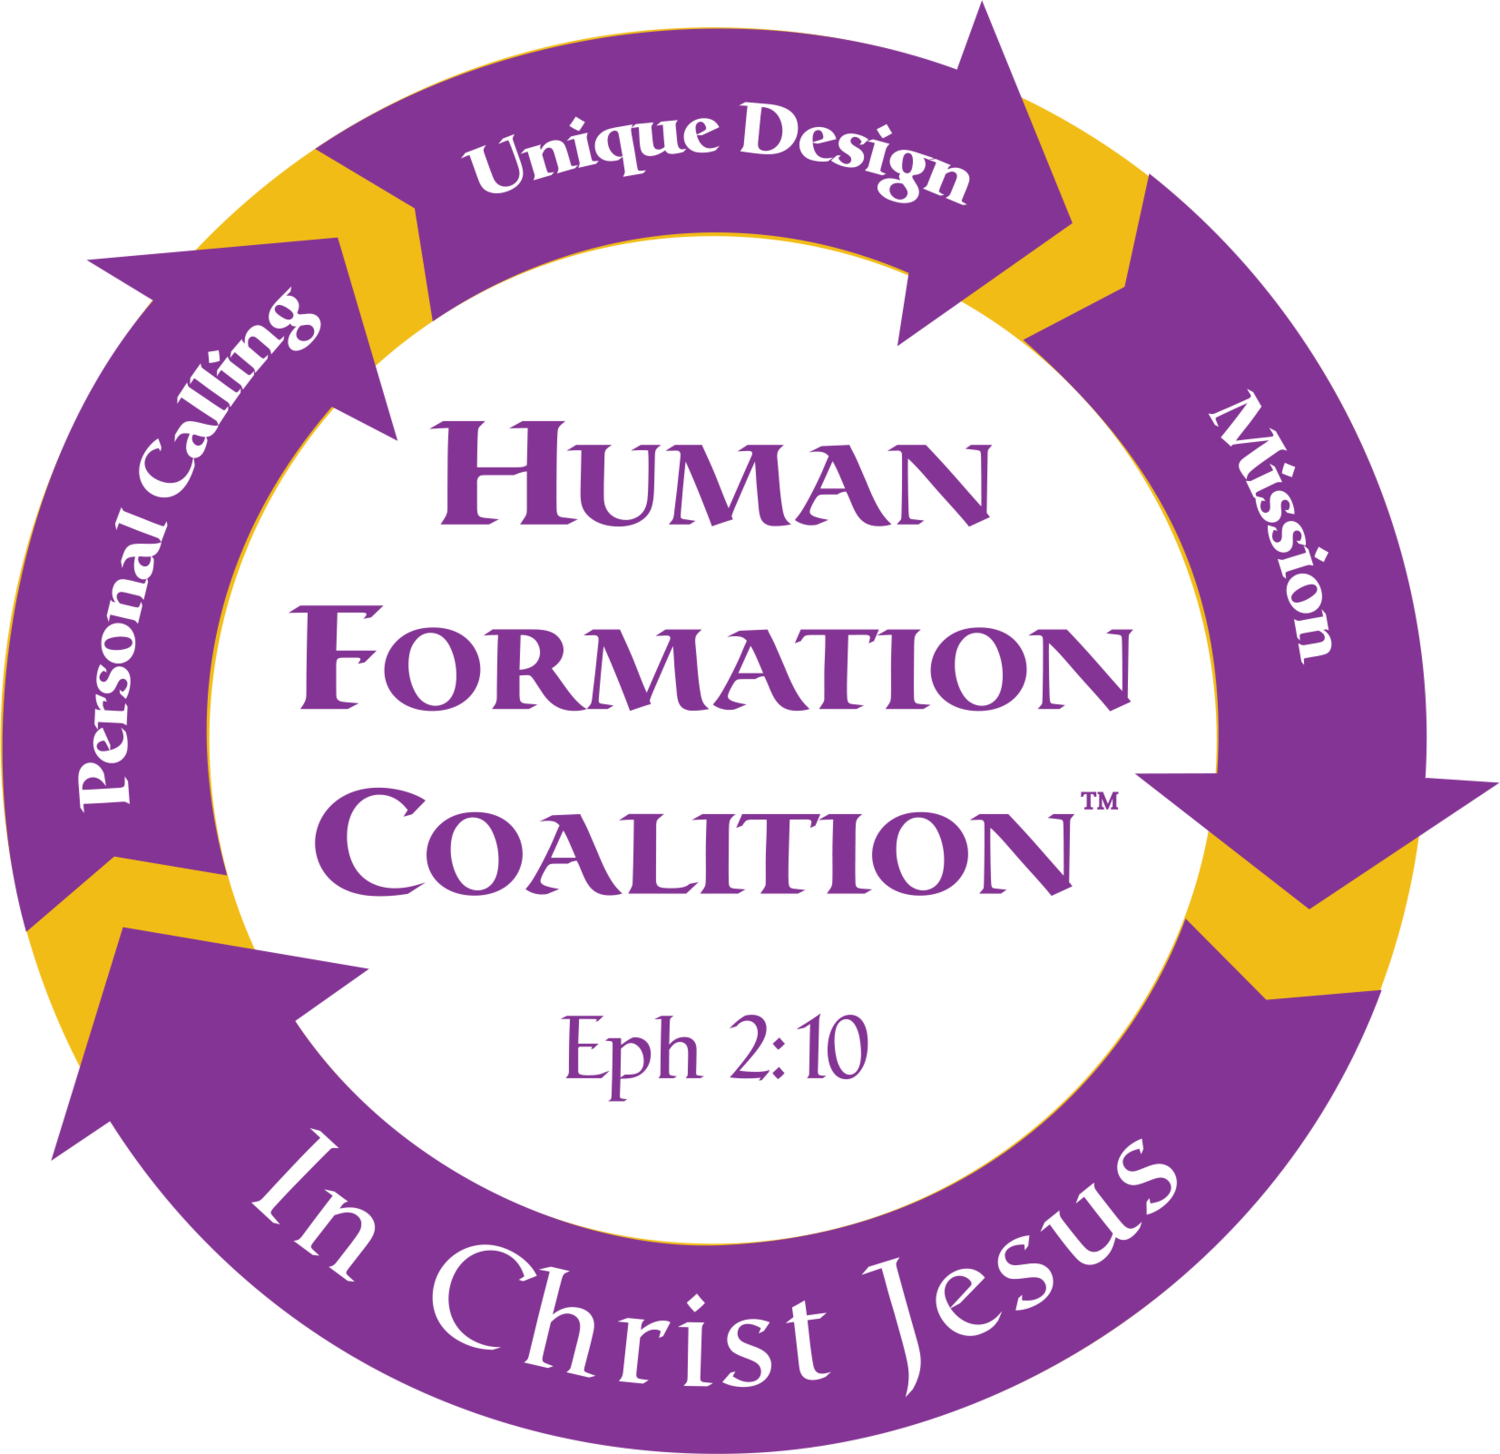 The Human Formation Coalition™